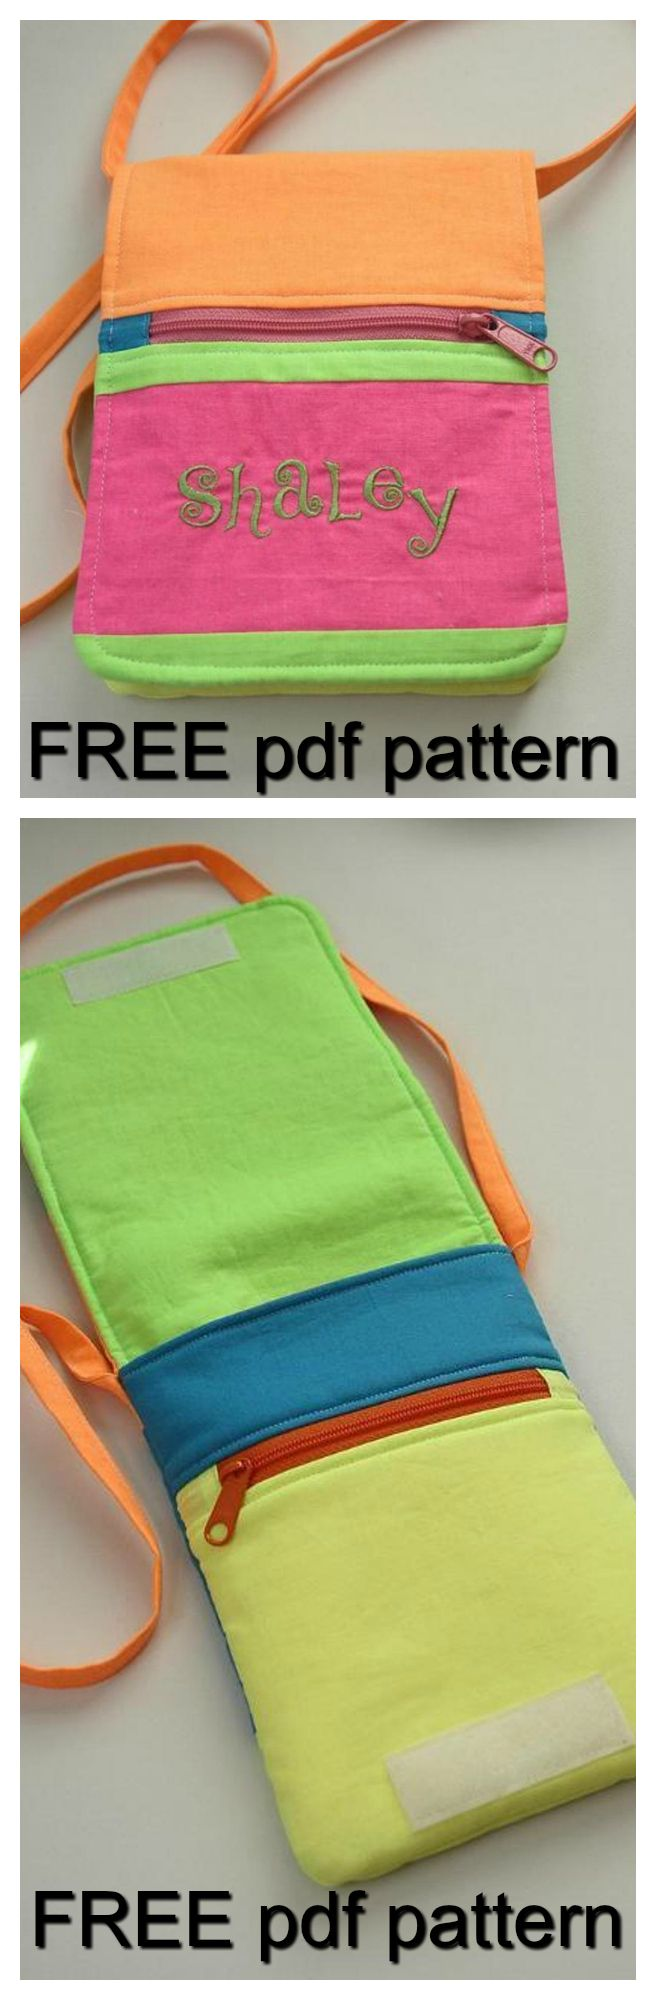 FREE downloadable pdf bag sewing pattern. This super easy hip pouch features a roomy interior pocket, two zipper pockets and a large flap to keep it all secure. It's small enough to use for quick trips when you only need the essentials, but large enough to hold everything you need.